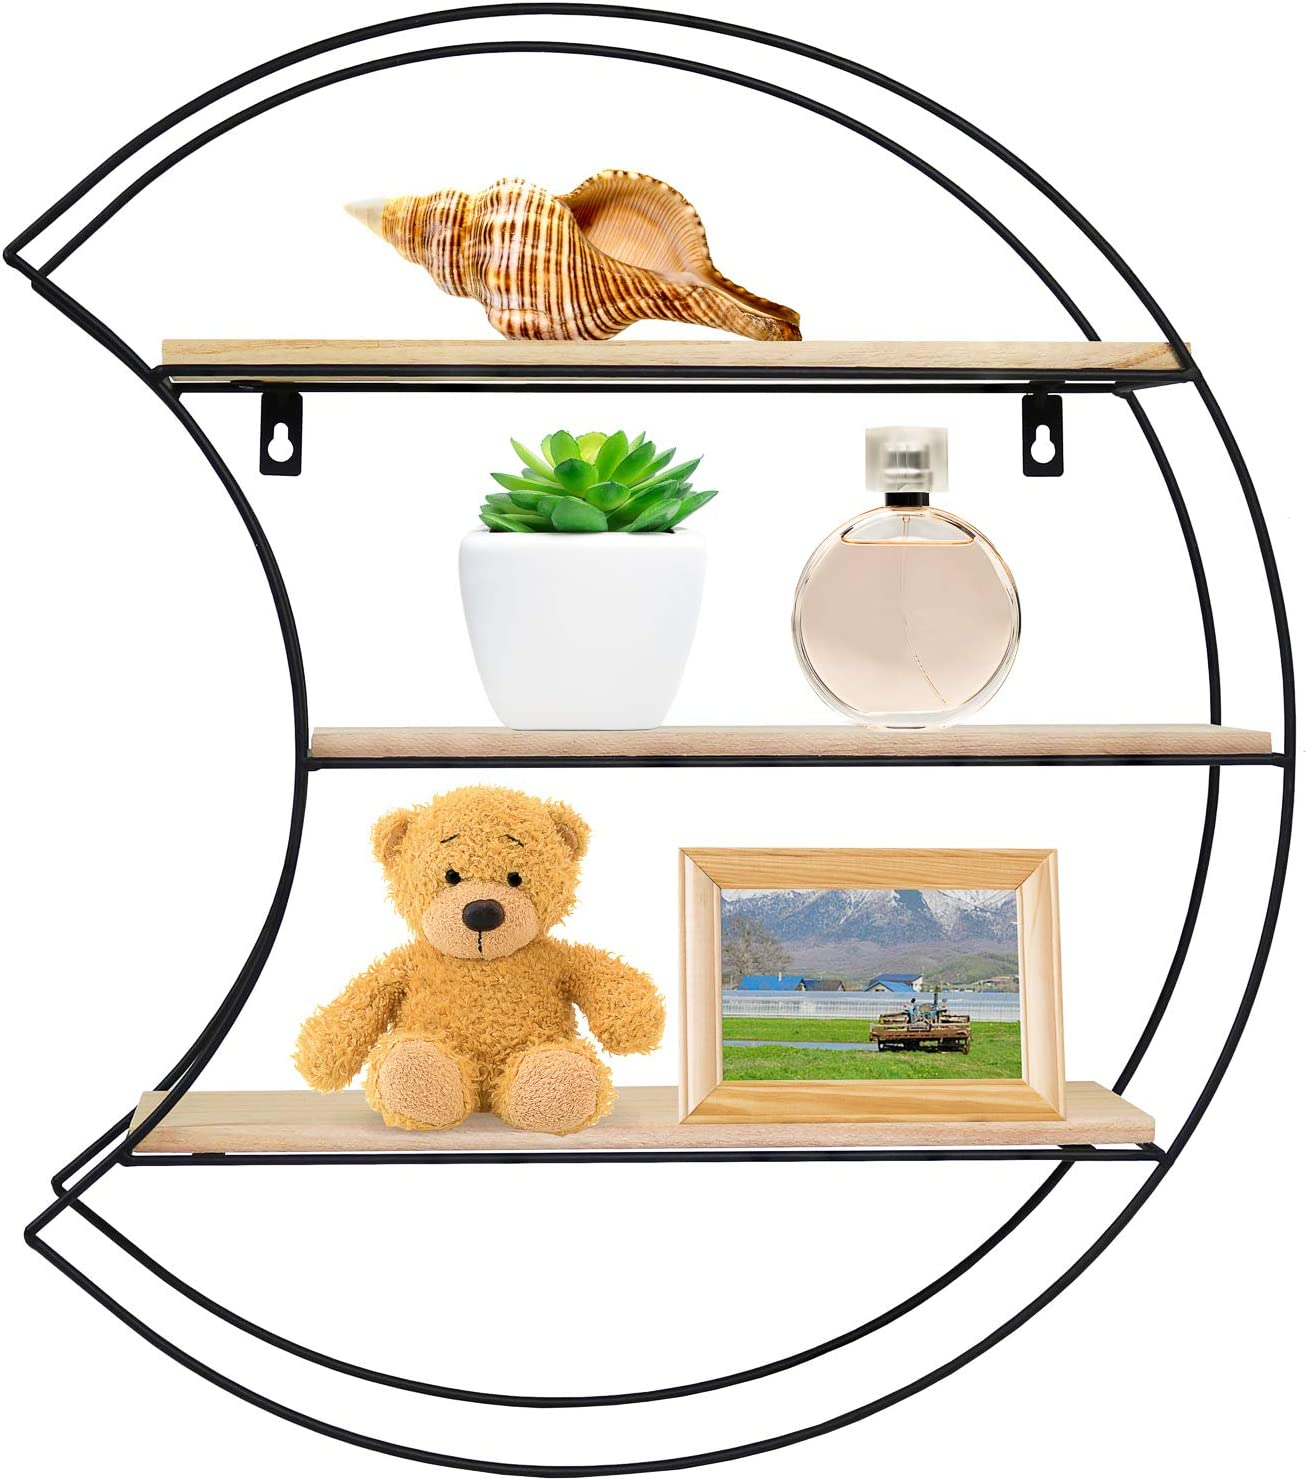 Greenco Geometric Moon Shaped Mounted Floating Shelf, Home Decor, Metal Wire and Rustic Wood Wall Storage Shelves for Bedroom, Living Room, Bathroom, Kitchen and Office, Natrual